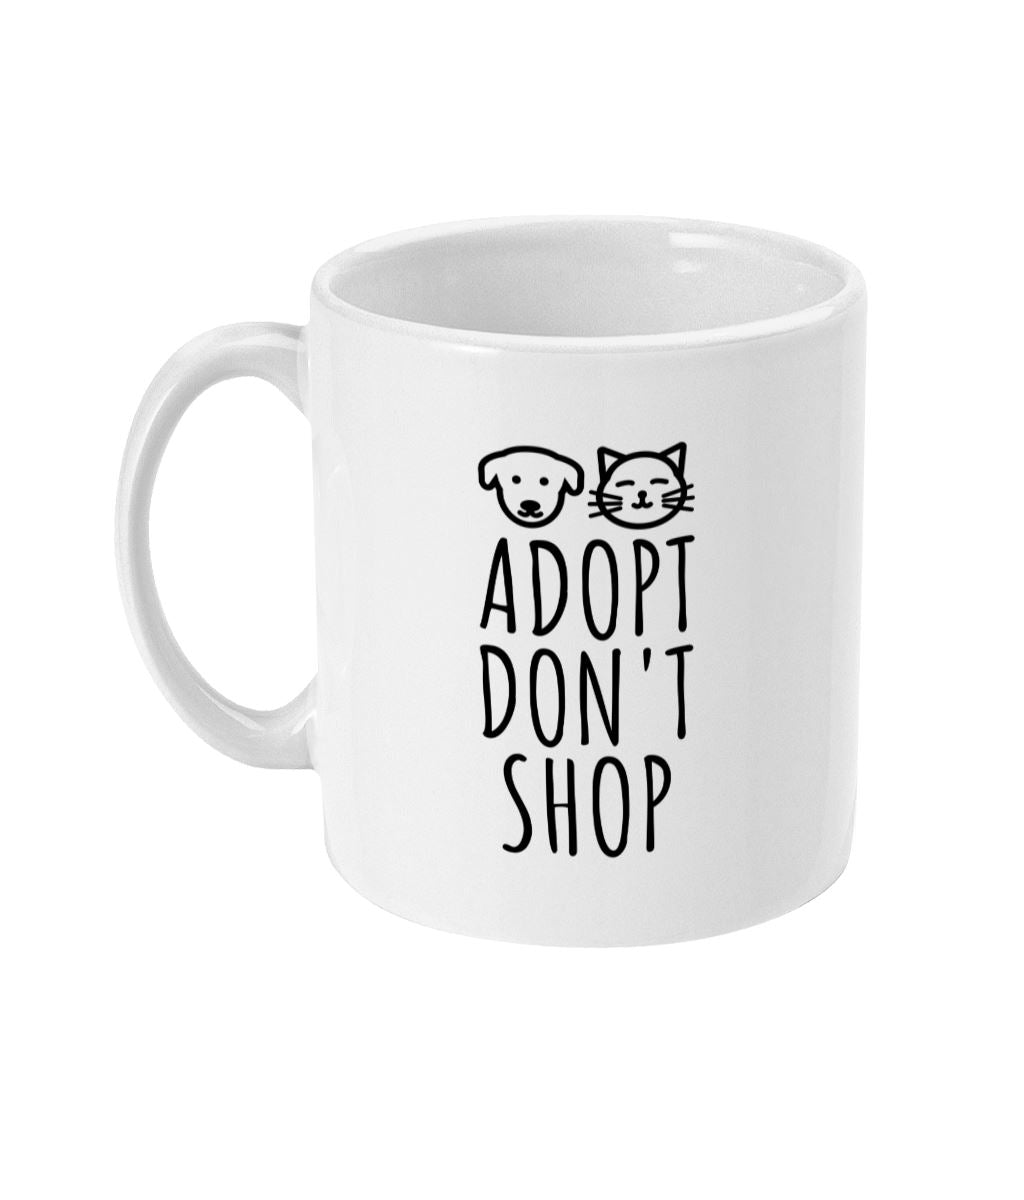 """Adopt, Don't Shop"" 11oz Vegan Mug Suggested Products Vegan Original Ceramic White"